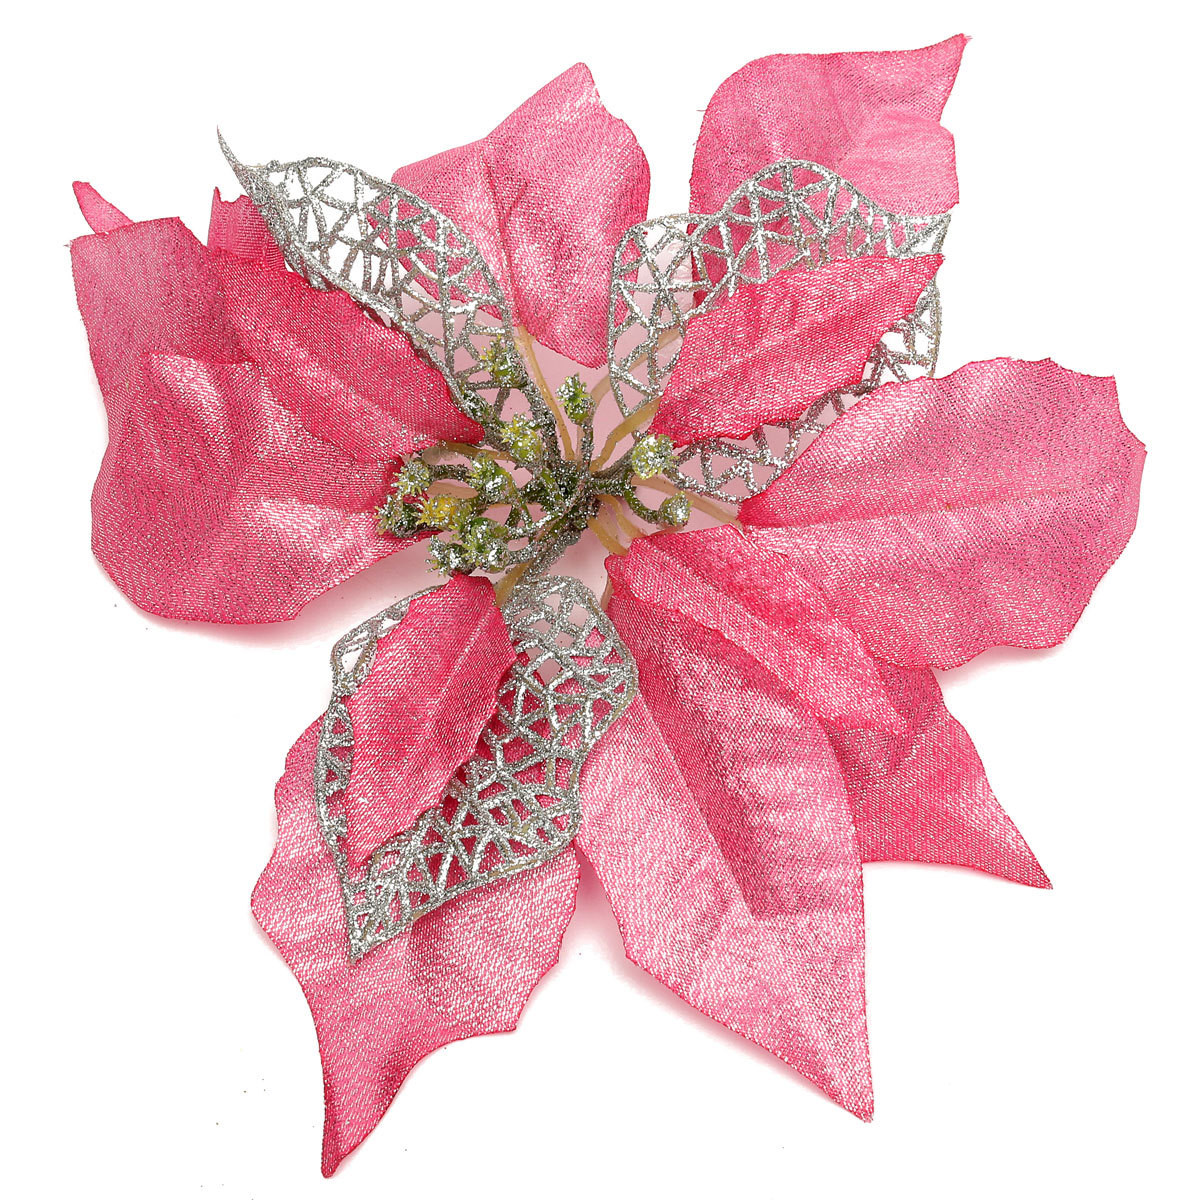 Flower Christmas Ornaments  Artificial Flower Christmas Tree Decorations Xmas Party